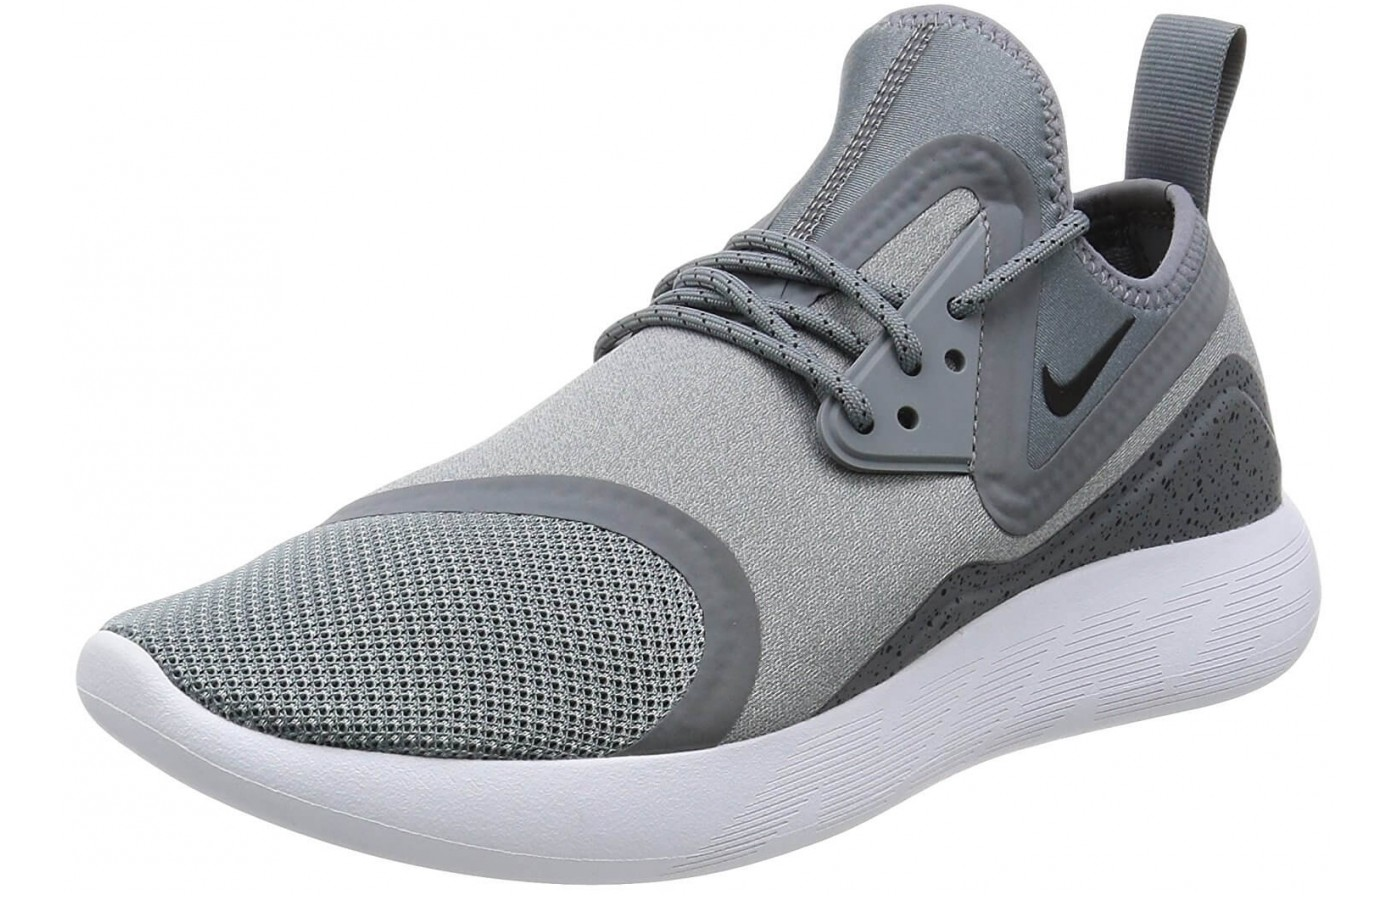 576c634c12 The ankle loop on the Nike LunarCharge Essential provides an easier time  putting on these shoes ...